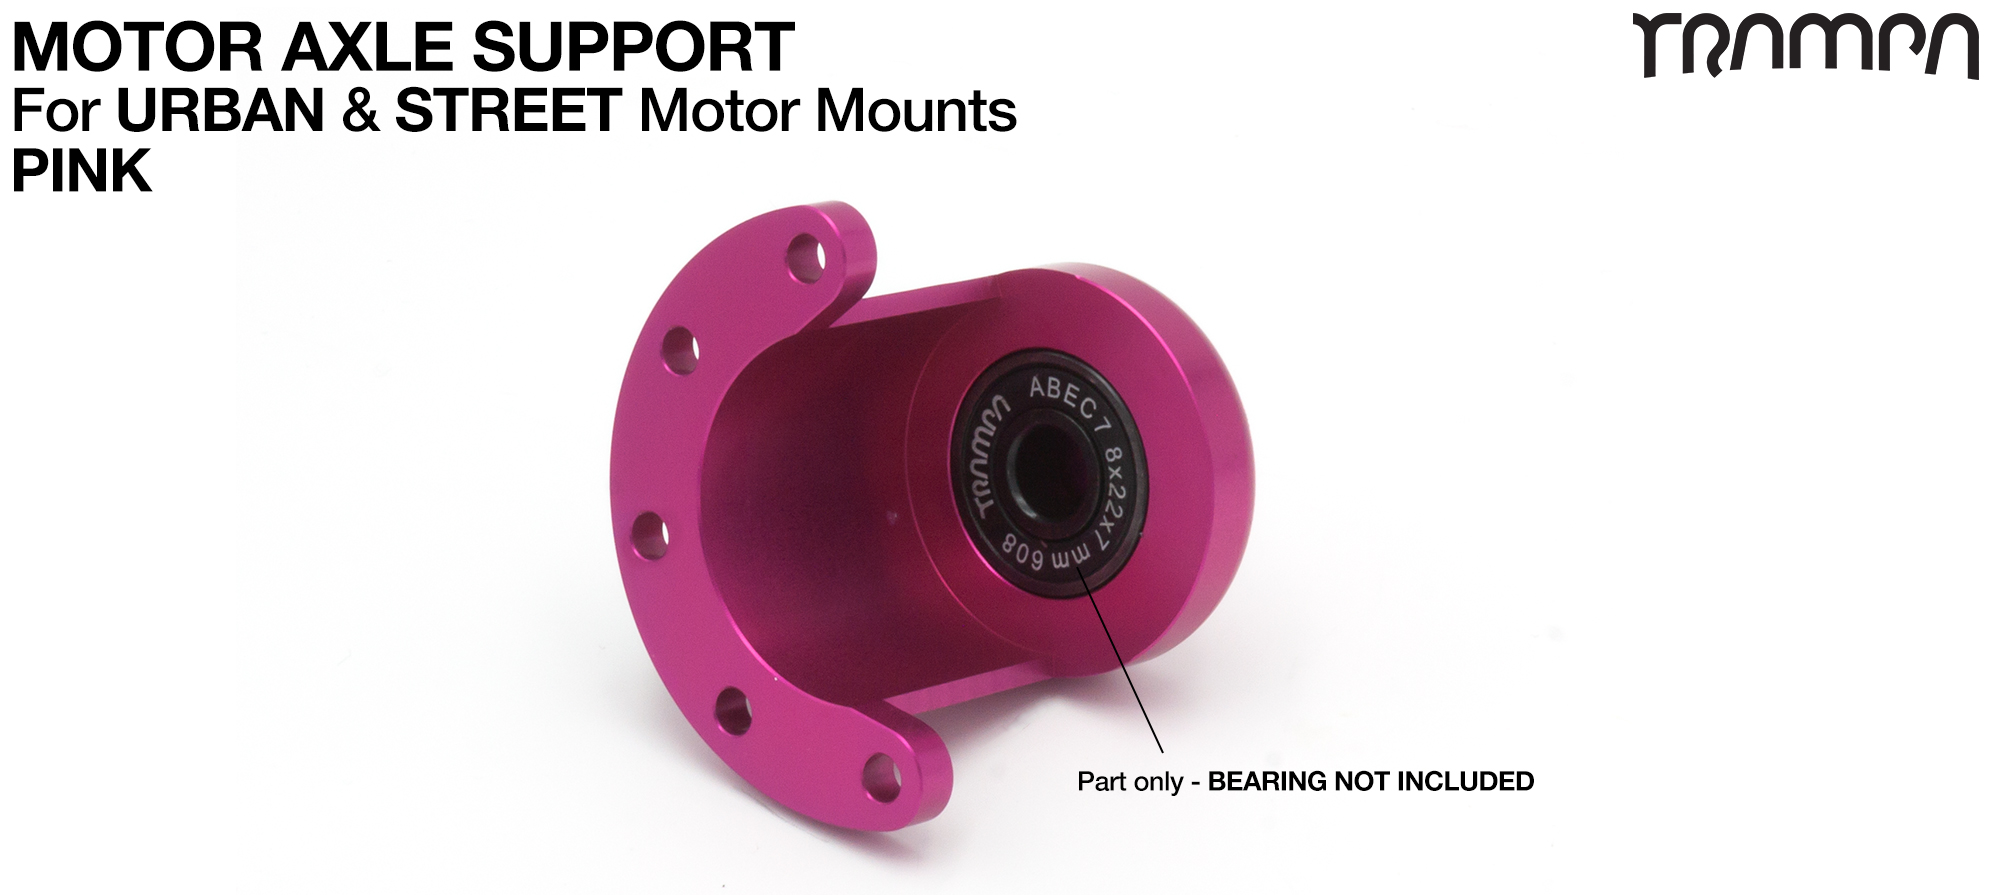 Motor Axle Support for Spring Truck Motor Mounts UNIVERSAL - PINK